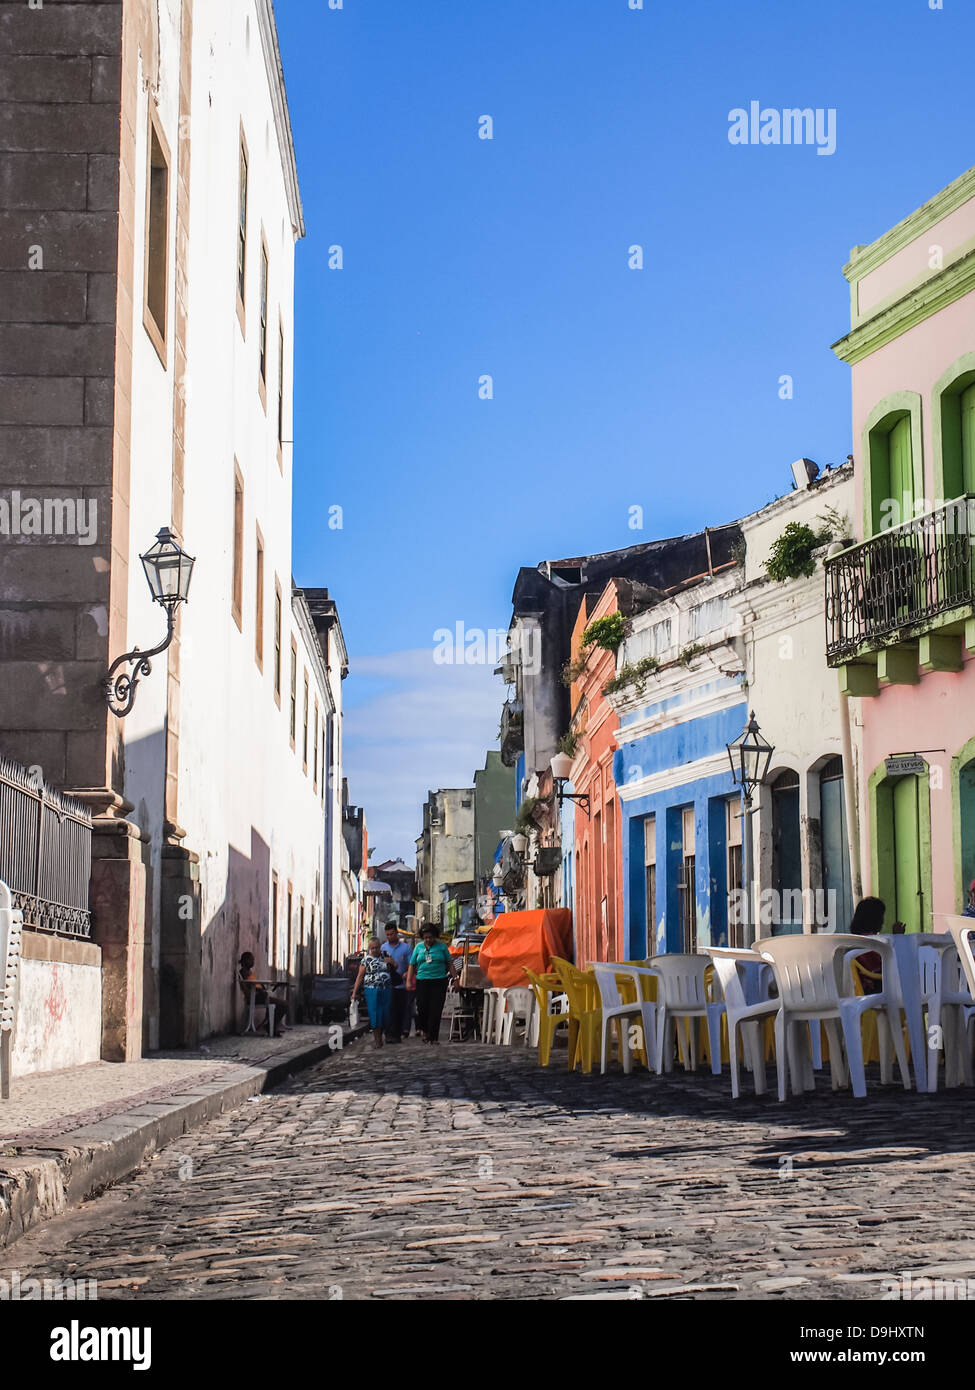 The historical center of Recife, the capital of Pernambco region in Brazil. - Stock Image